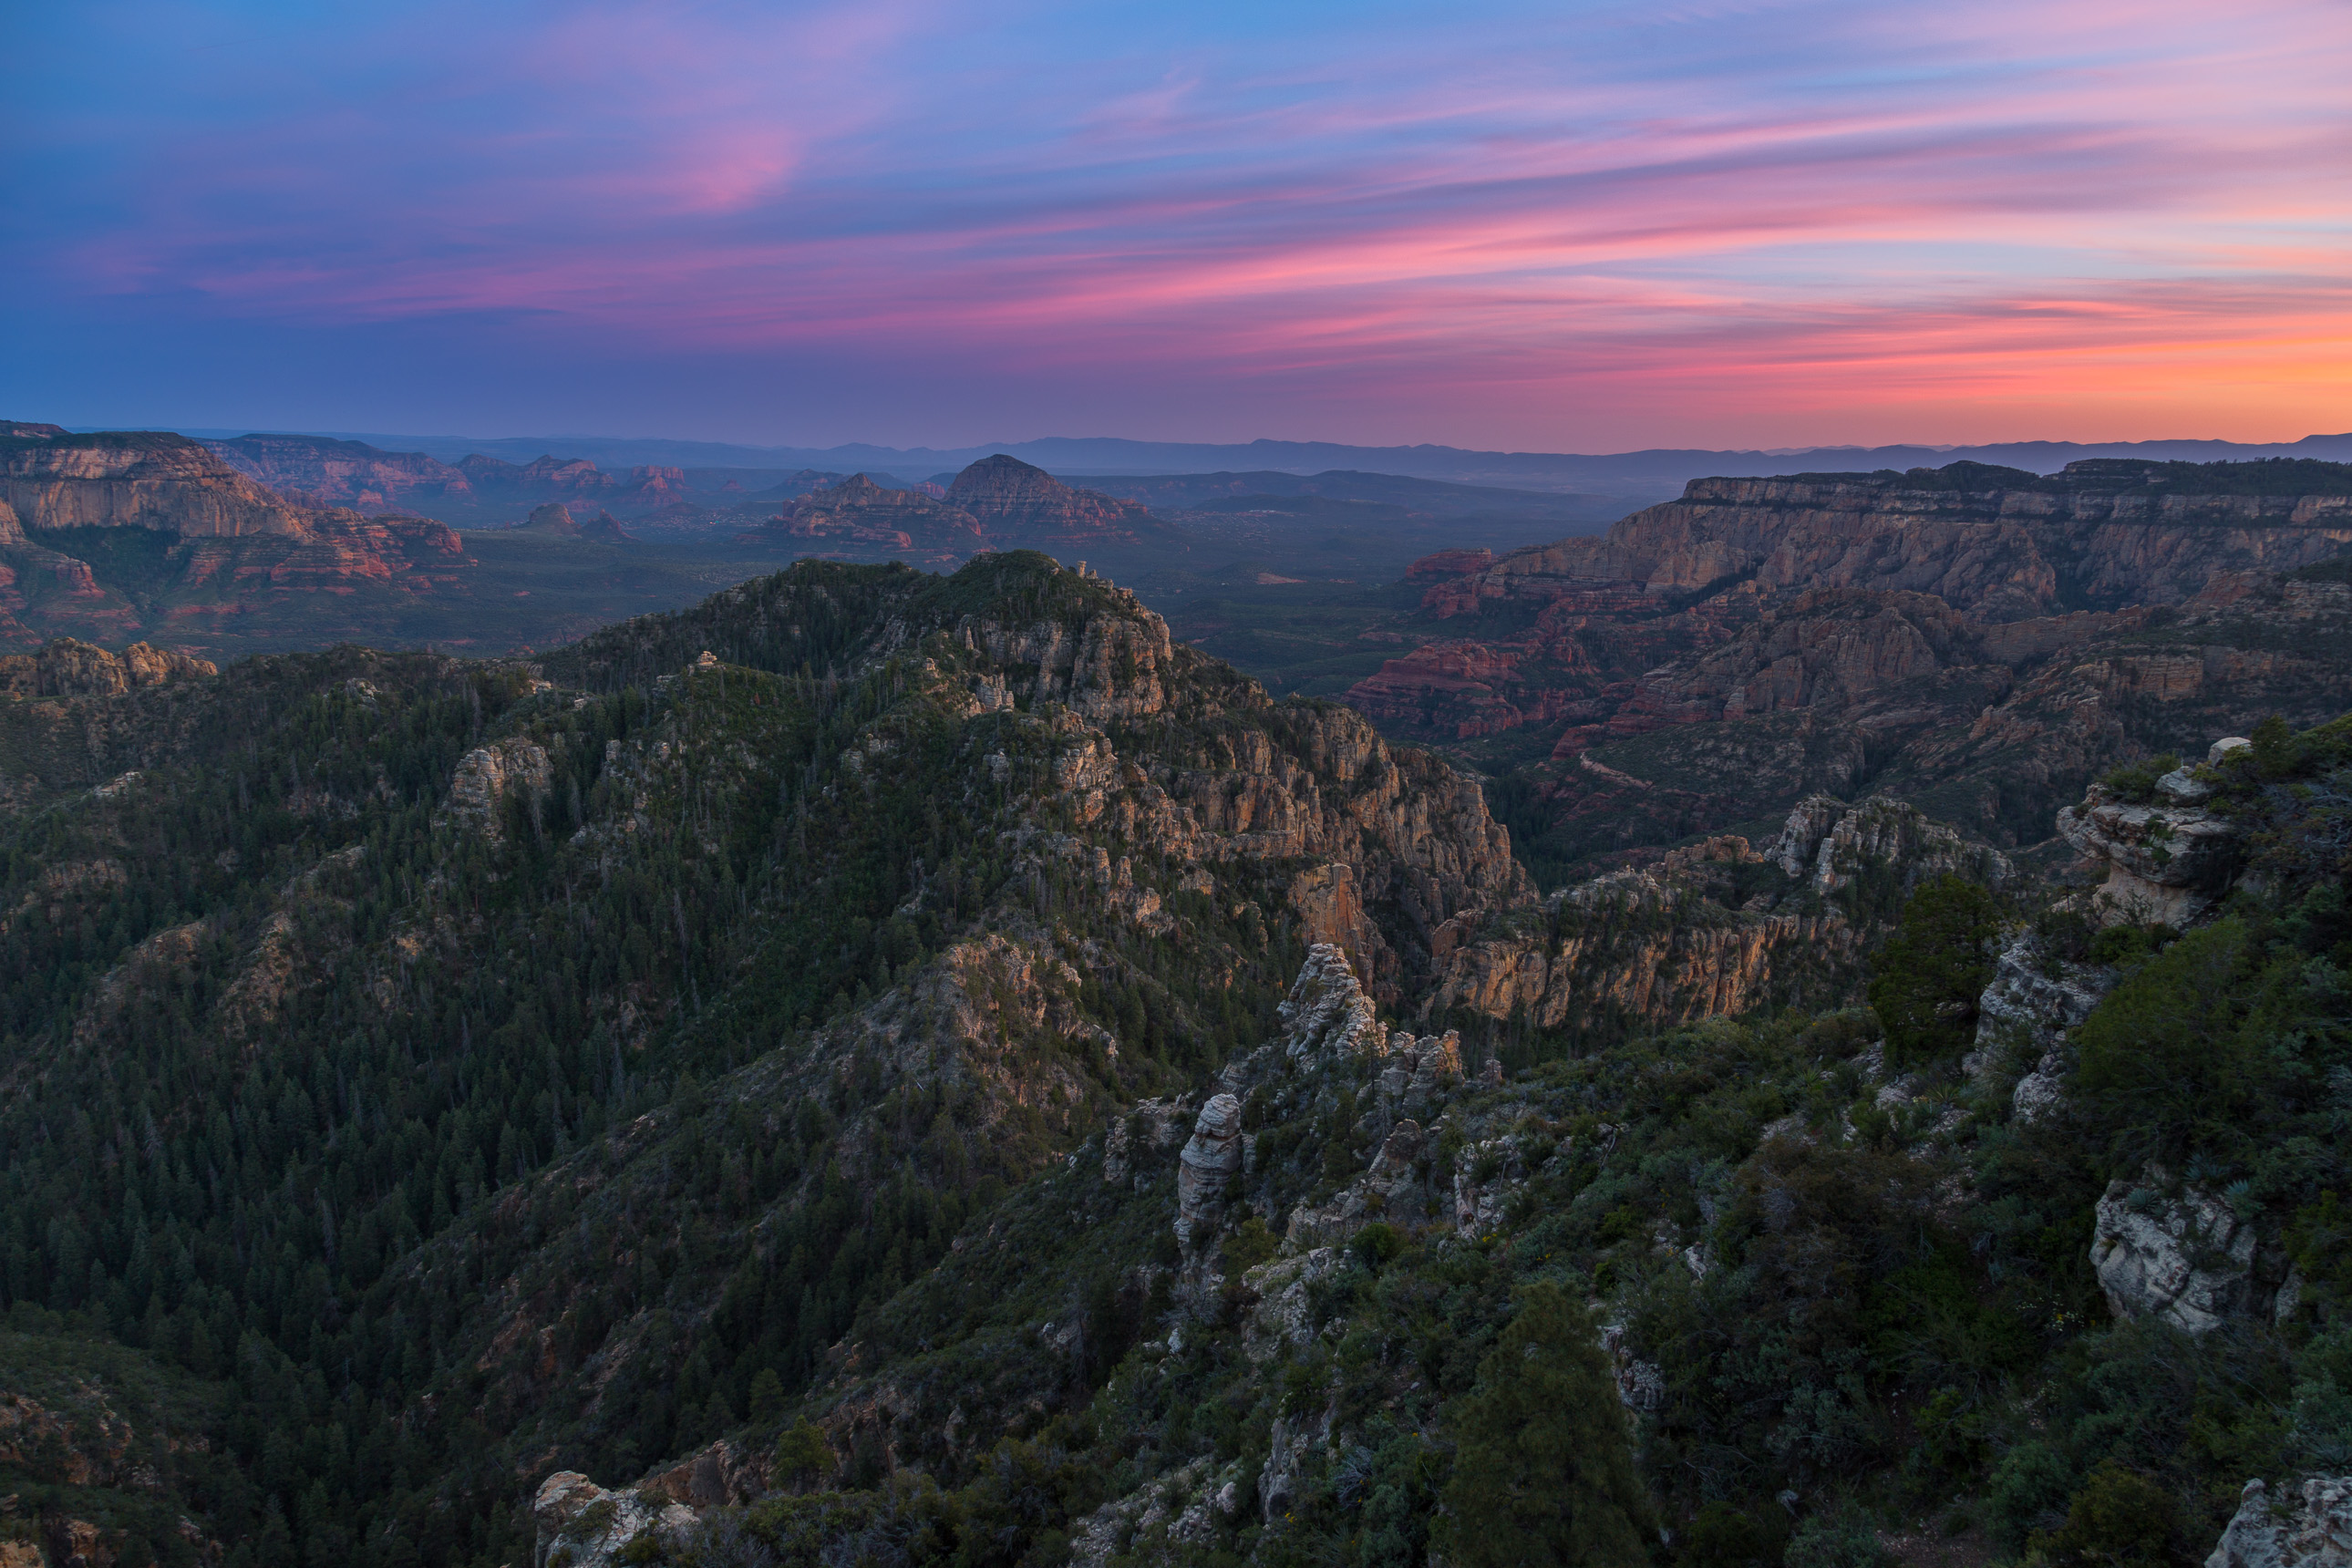 Sunset over Sedona's Secret Mountain Wilderness